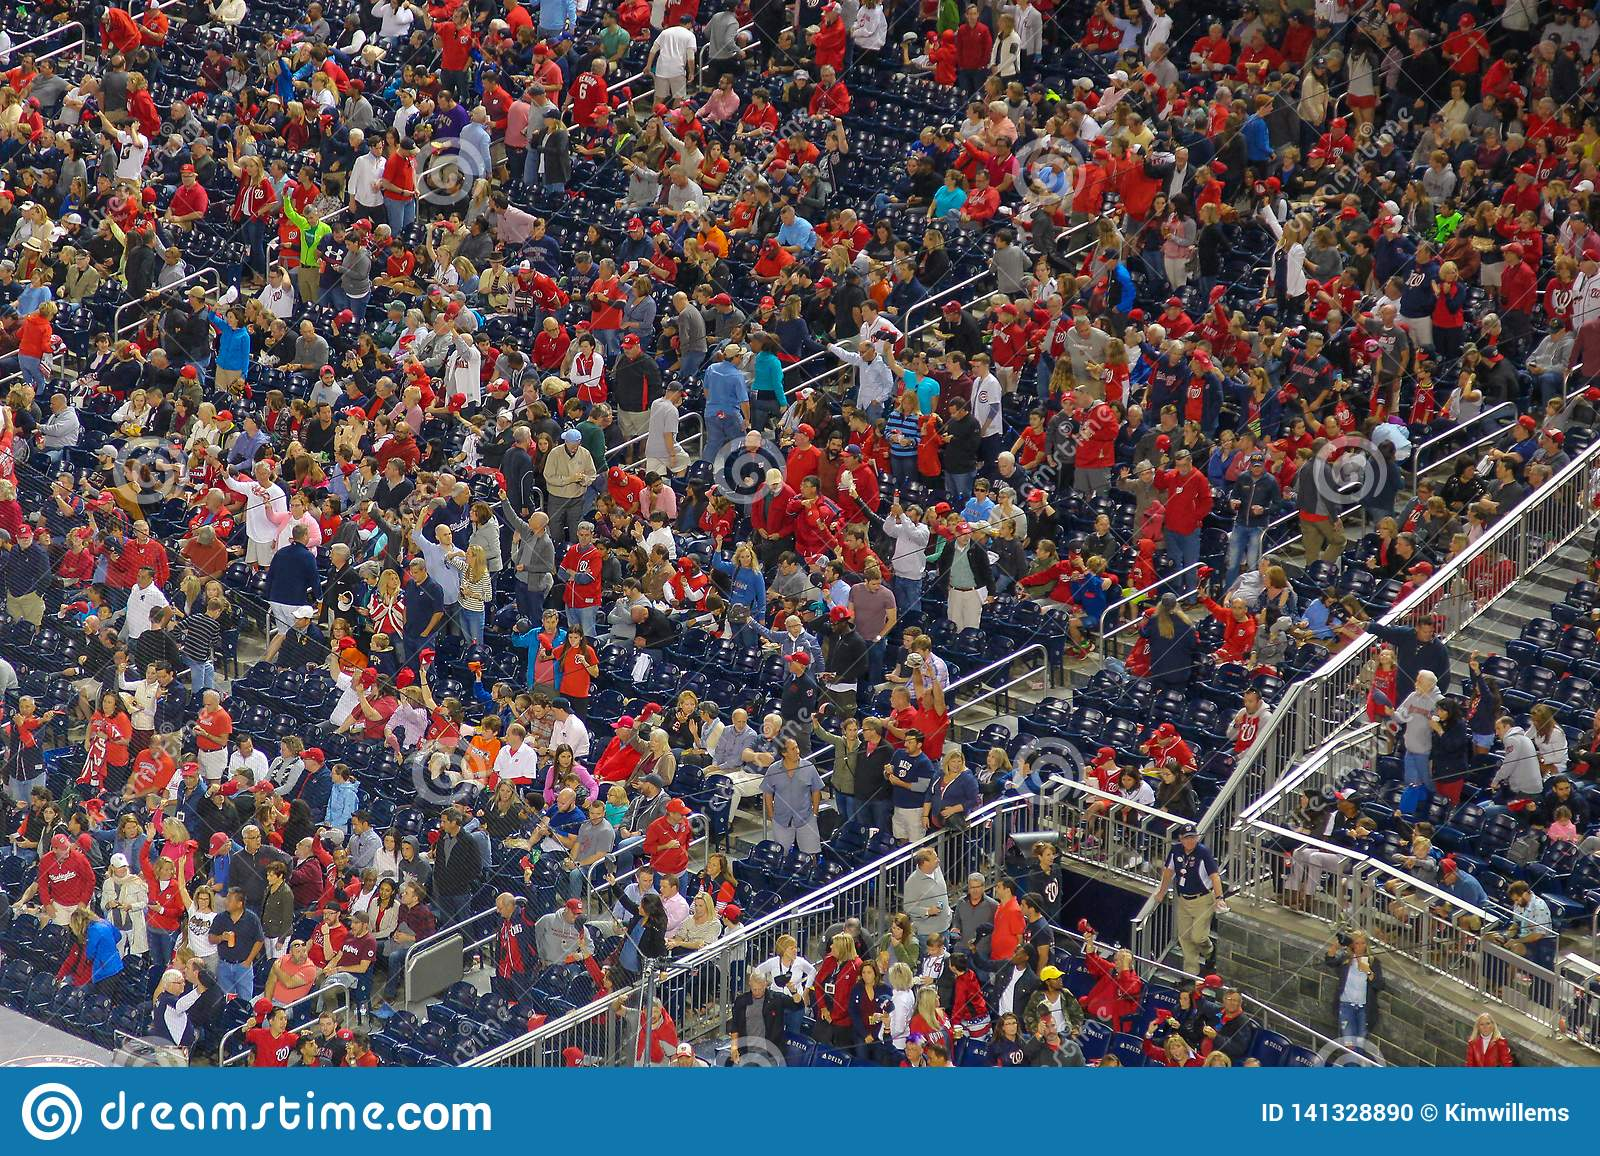 People in red cheering during an event